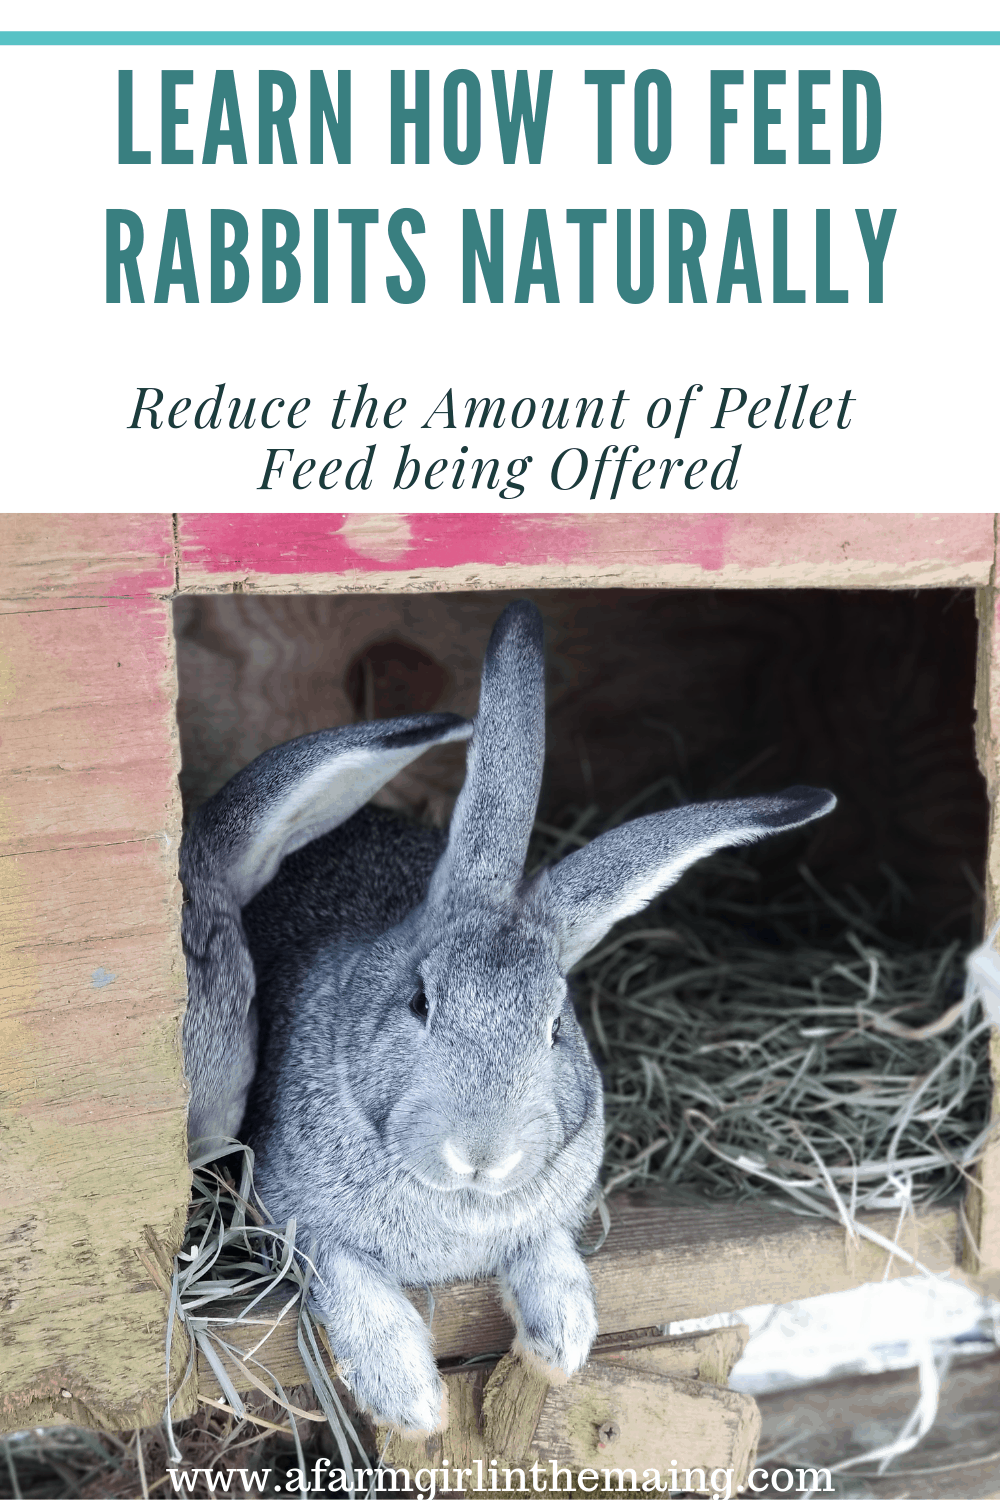 feeding rabbits naturally | reduce pellet feed